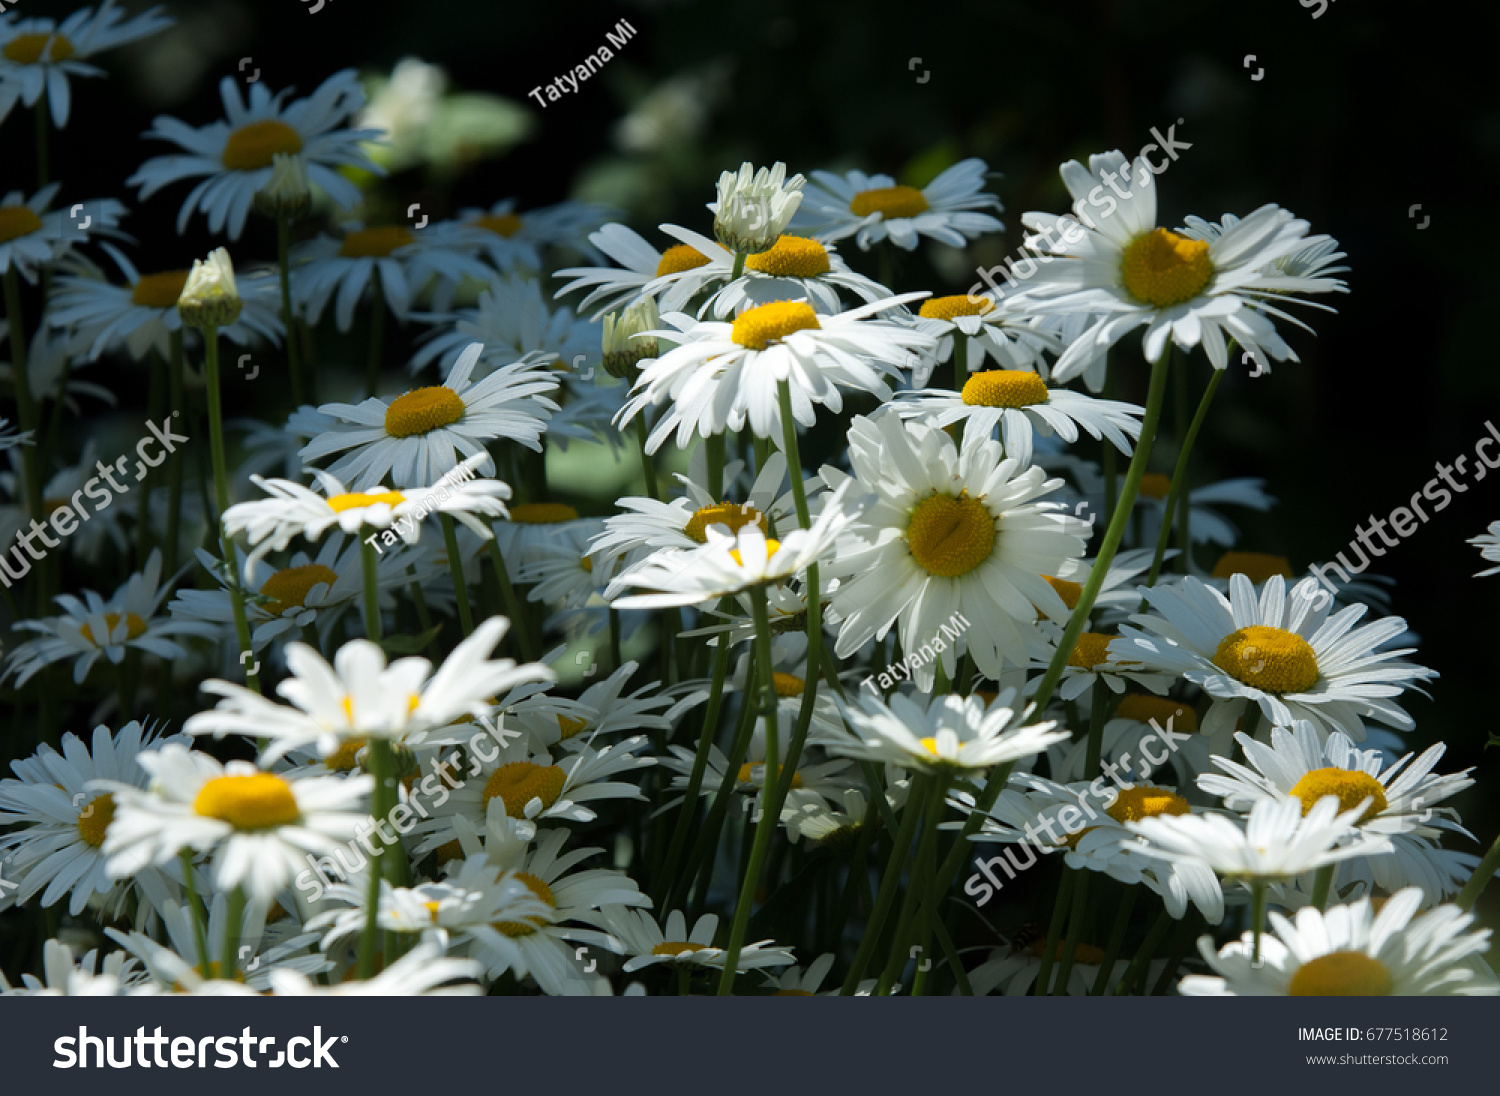 Summer photos flowers daisies aromatic european stock photo edit summer photos of flowers daisies an aromatic european plant of the daisy family with izmirmasajfo